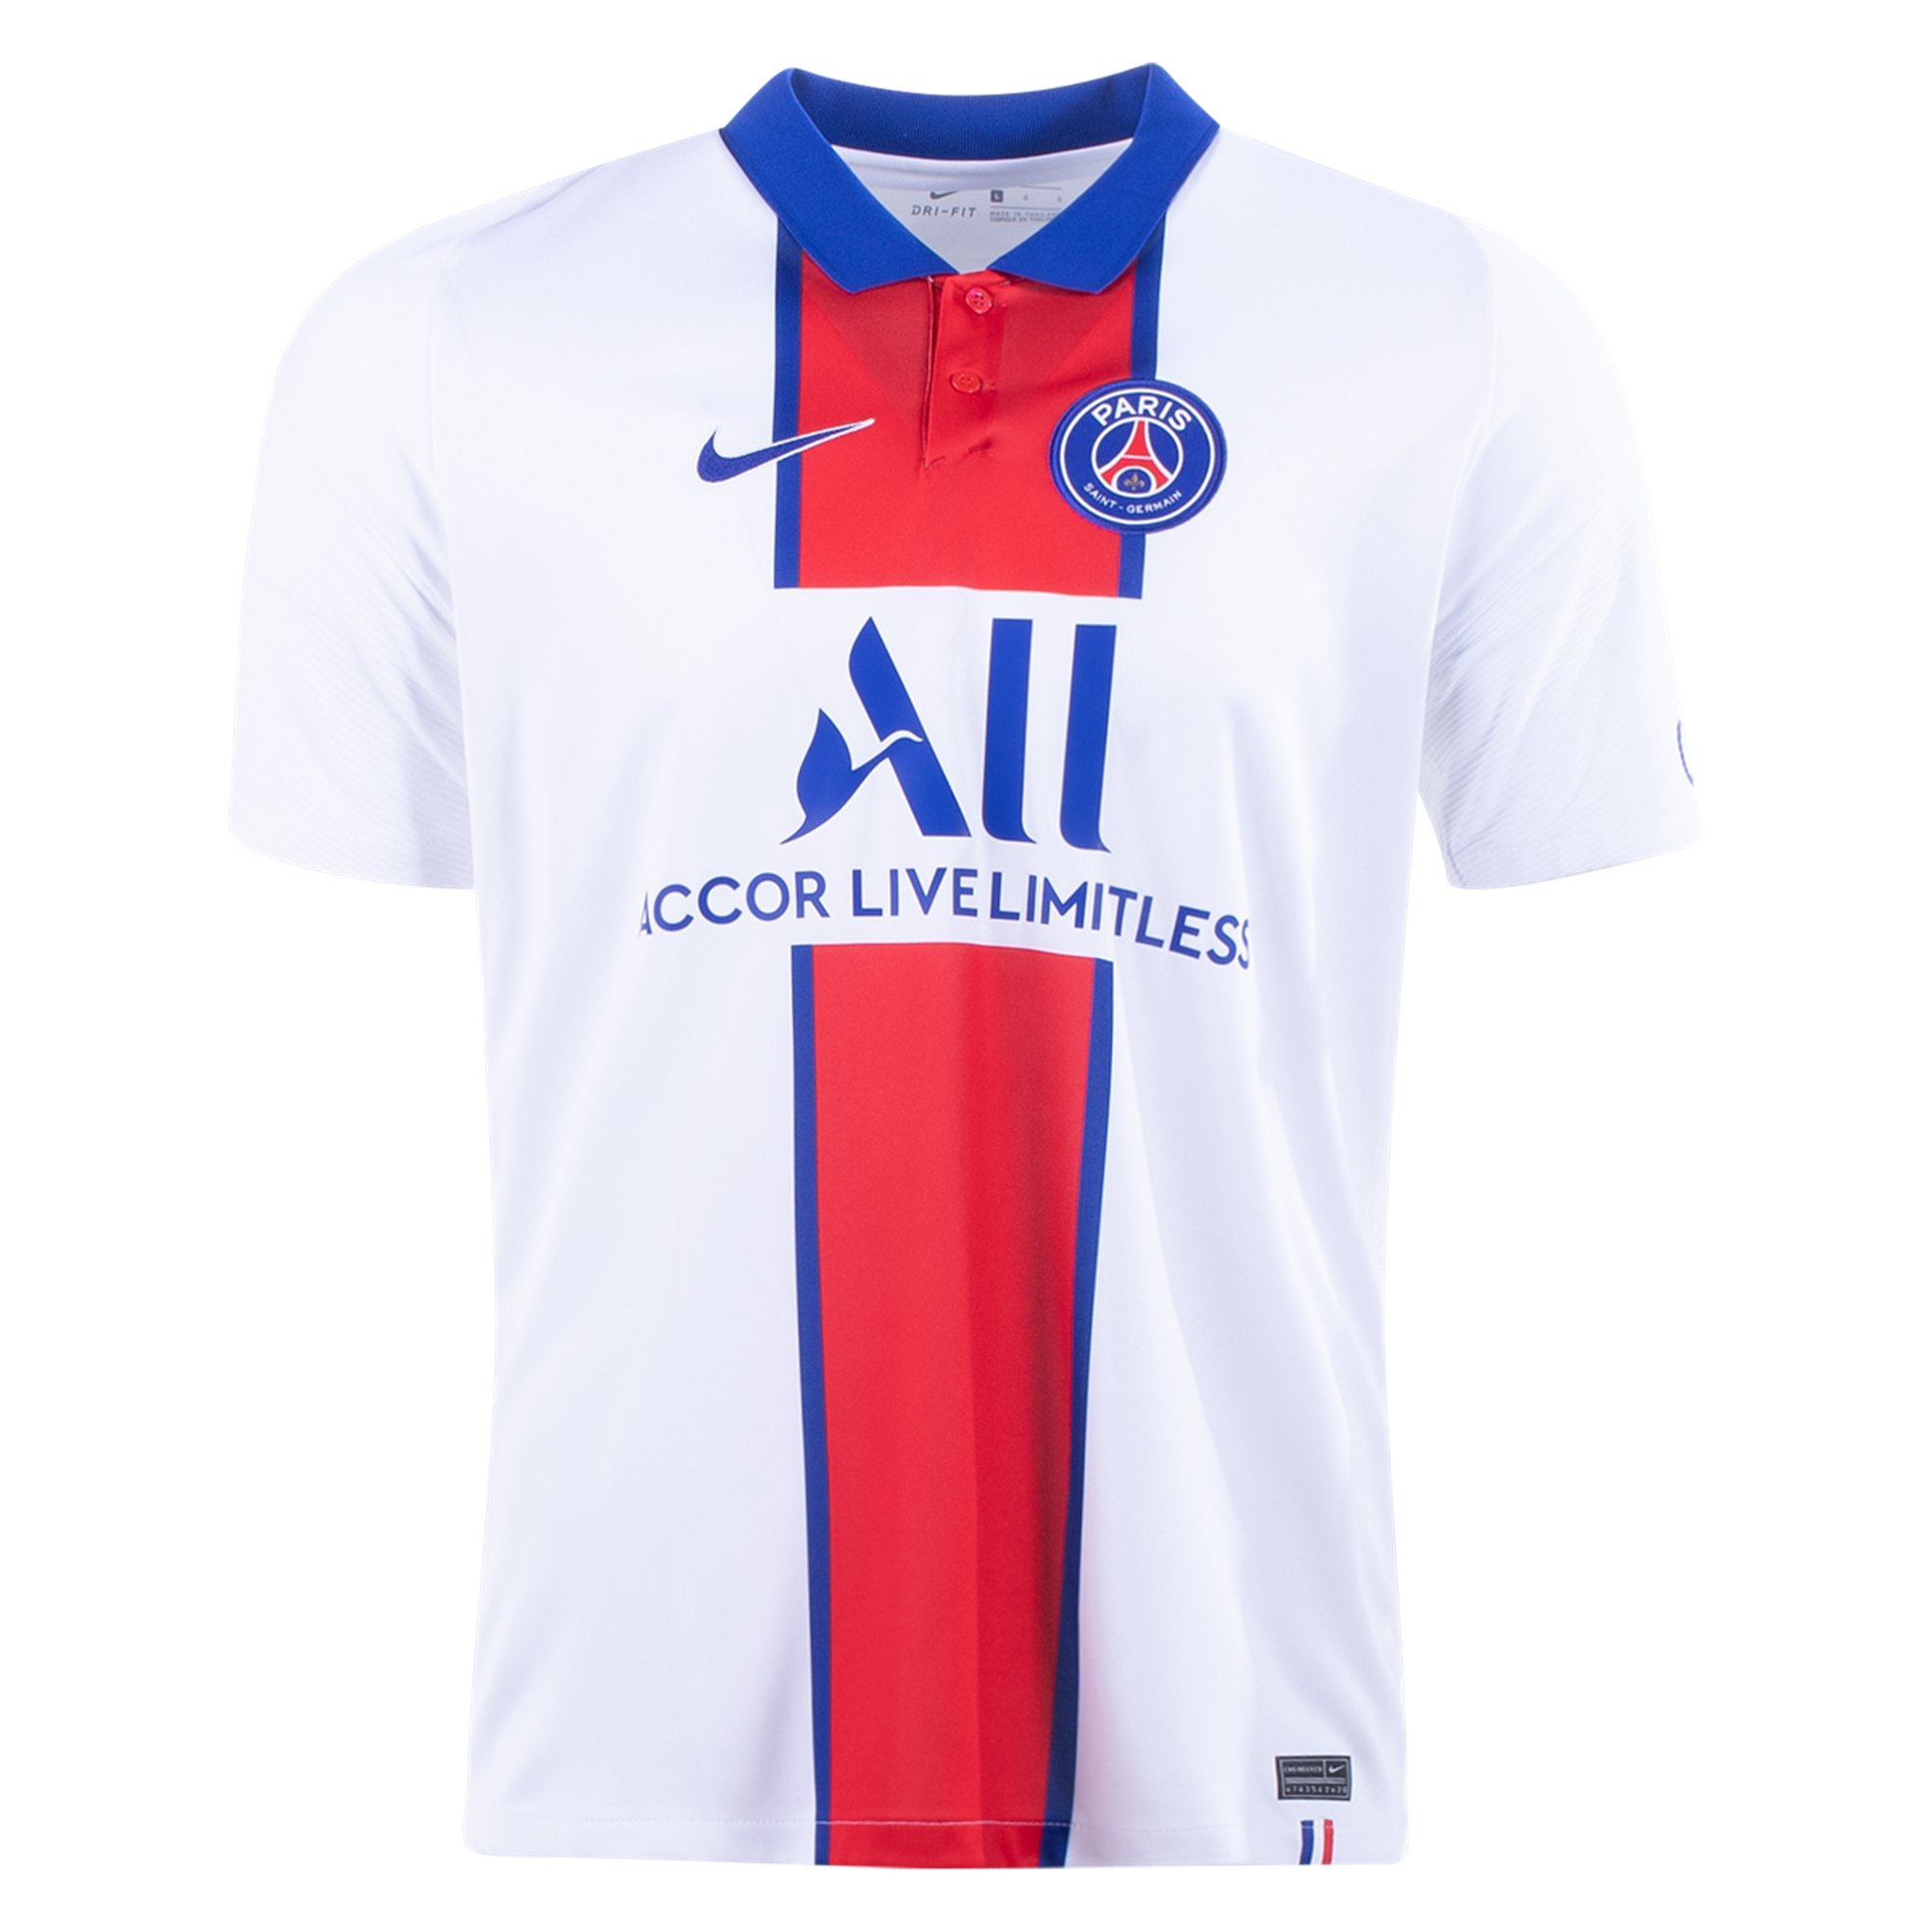 Nike Replica Paris Saint-Germain Away Jersey 20/21